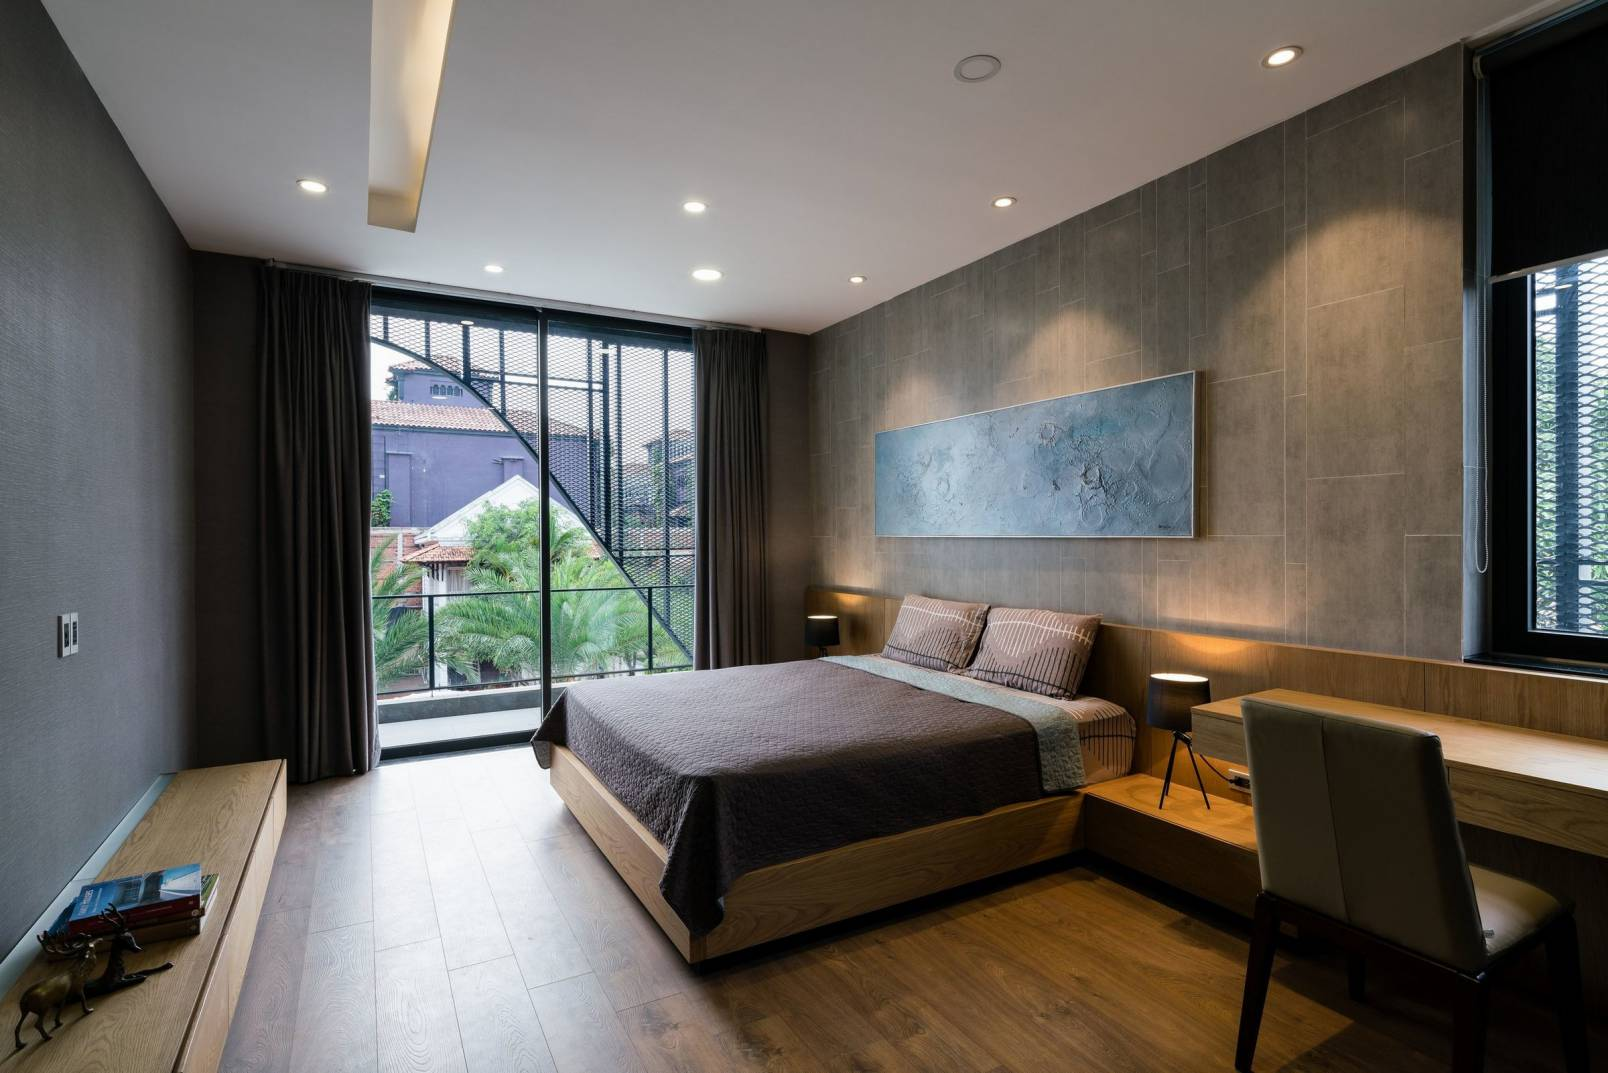 XTEN Architecture created an Iconic Property in Los Angeles with Great Room captures all best views to Los Angeles Down Town